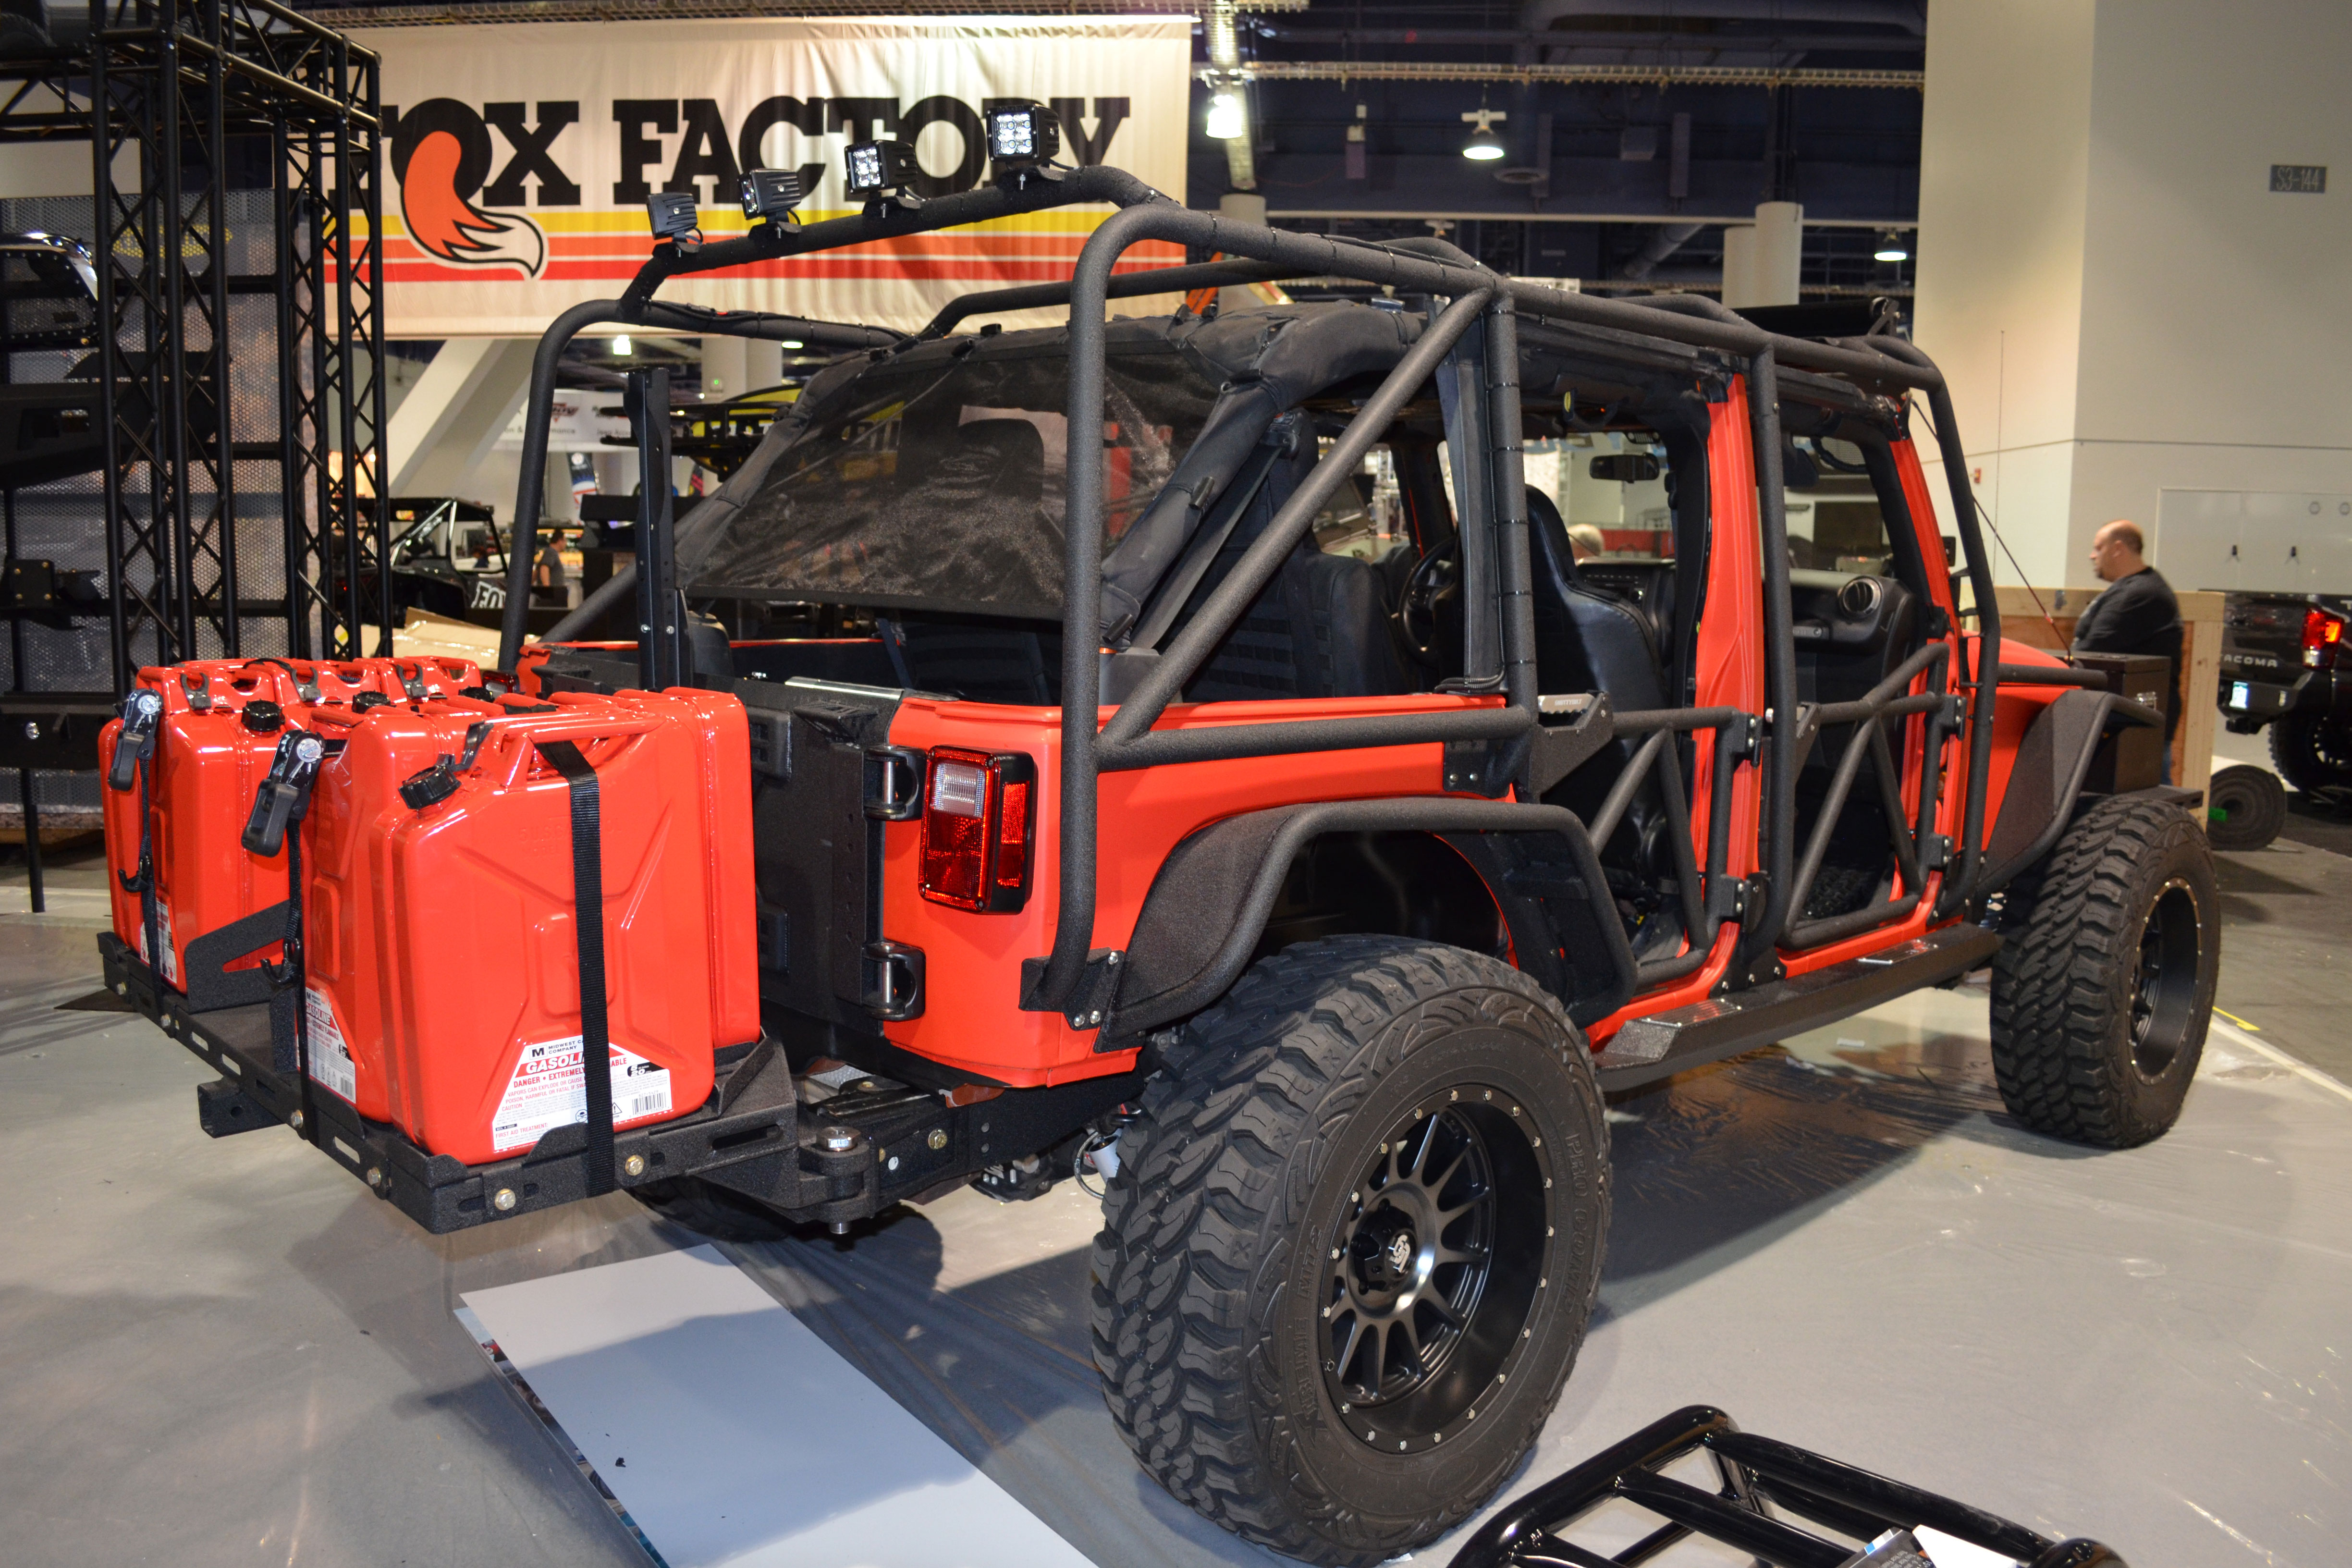 2015 SEMA Show Monday jeep with jerry cans